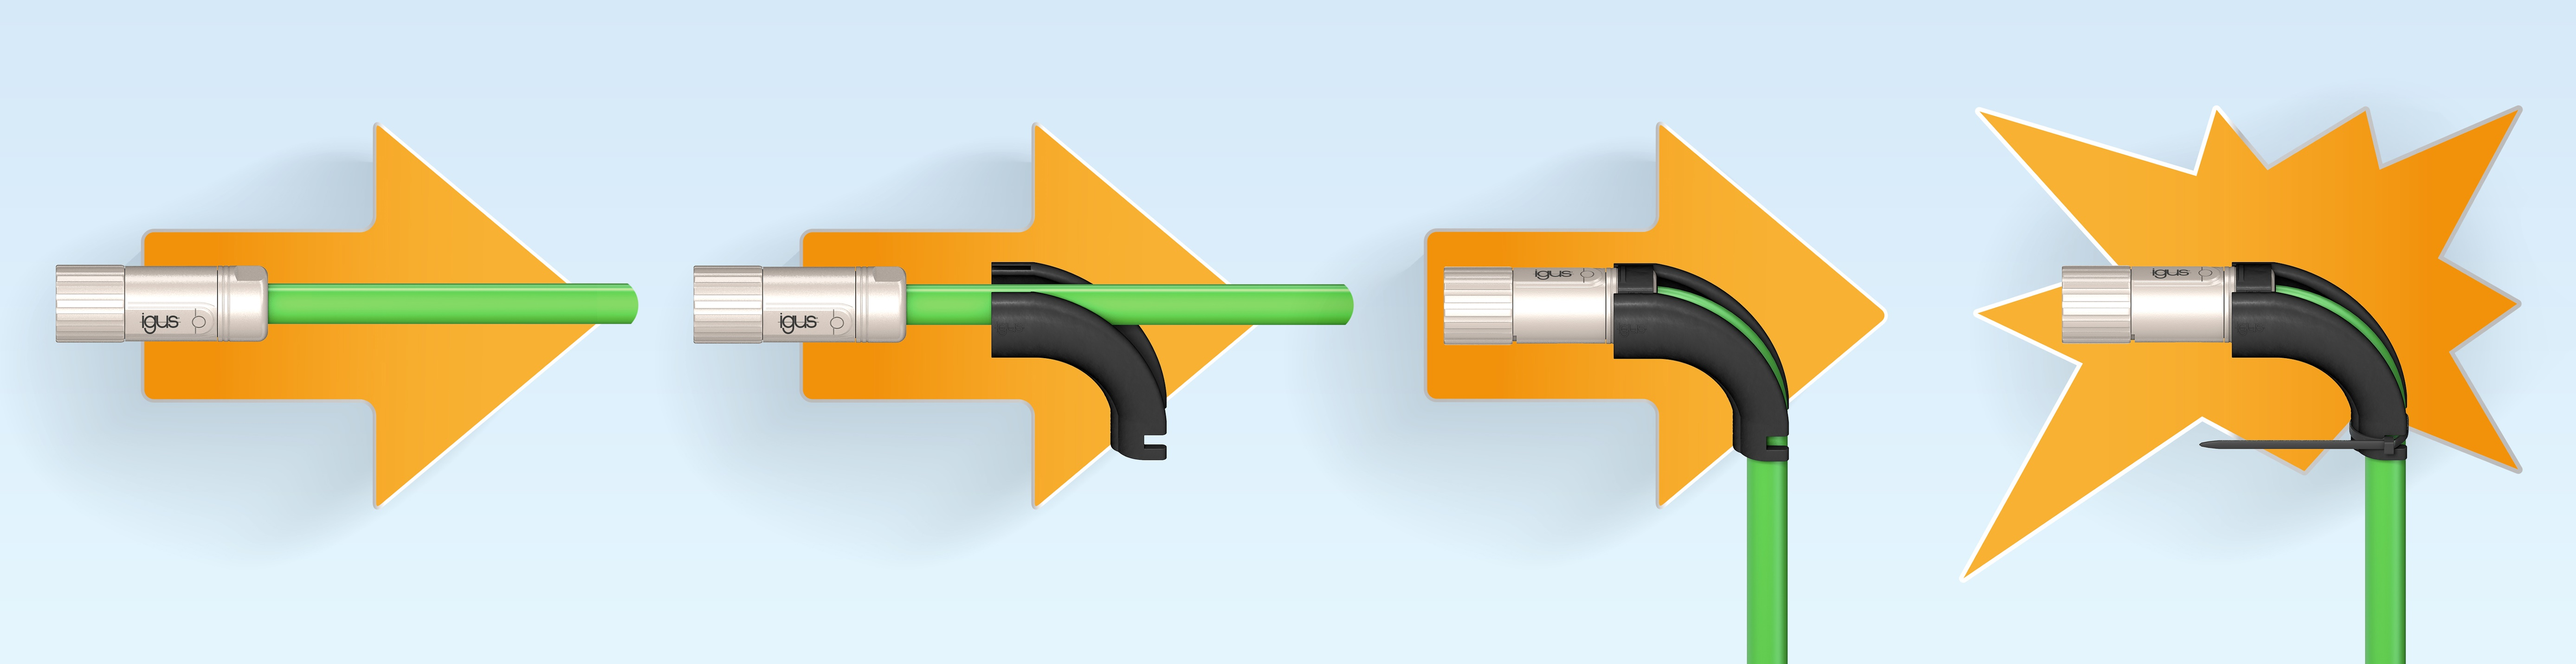 Ibow can be used to change a straight connector to an angled one